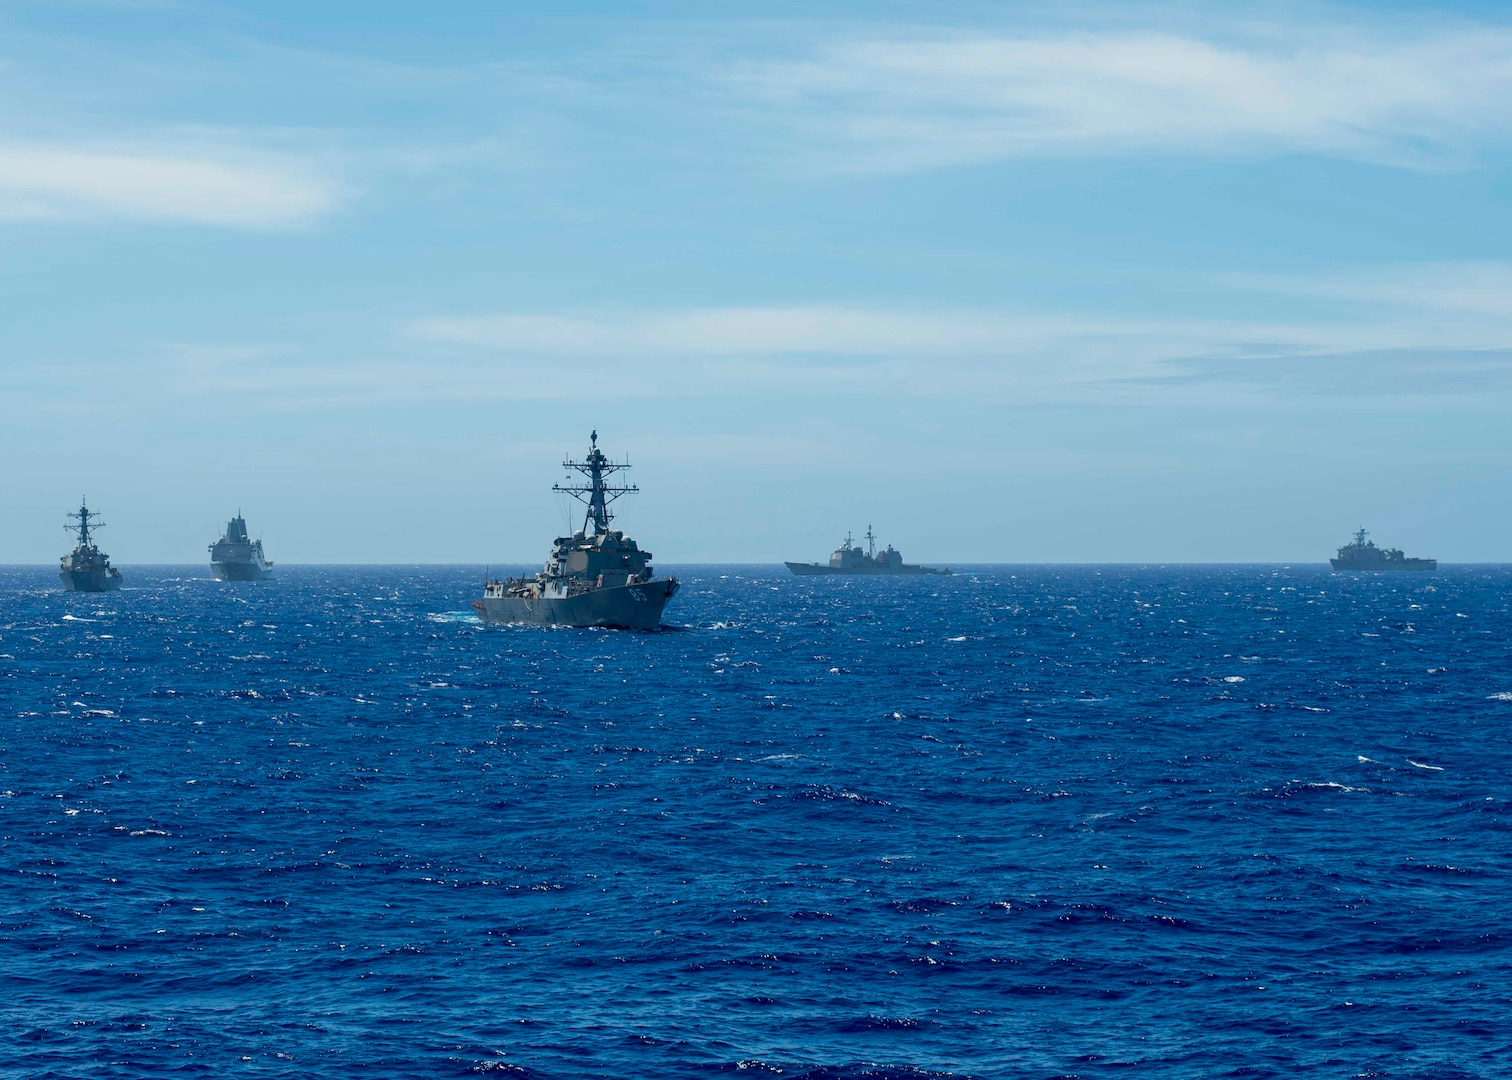 190314-N-WK982-2032 PHILIPPINE SEA (March 14, 2019) The Arleigh Burke-class guided-missile destroyer USS McCampbell (DDG 85), the Arleigh Burke-class guided-missile destroyer USS Milius (DDG 69), the amphibious transport dock ship USS Green Bay (LPD 20), the Ticonderoga-class guided-missile cruiser USS Chancellorsville (CG 62), and the amphibious dock landing ship USS Ashland (LSD 48) maneuver while operating in the Philippine Sea. U.S. Navy warships train together to increase the tactical proficiency, lethality, and interoperability of participating units in an Era of Great Power Competition. (U.S. Navy photo by Mass Communication Specialist 2nd Class John Harris/Released)